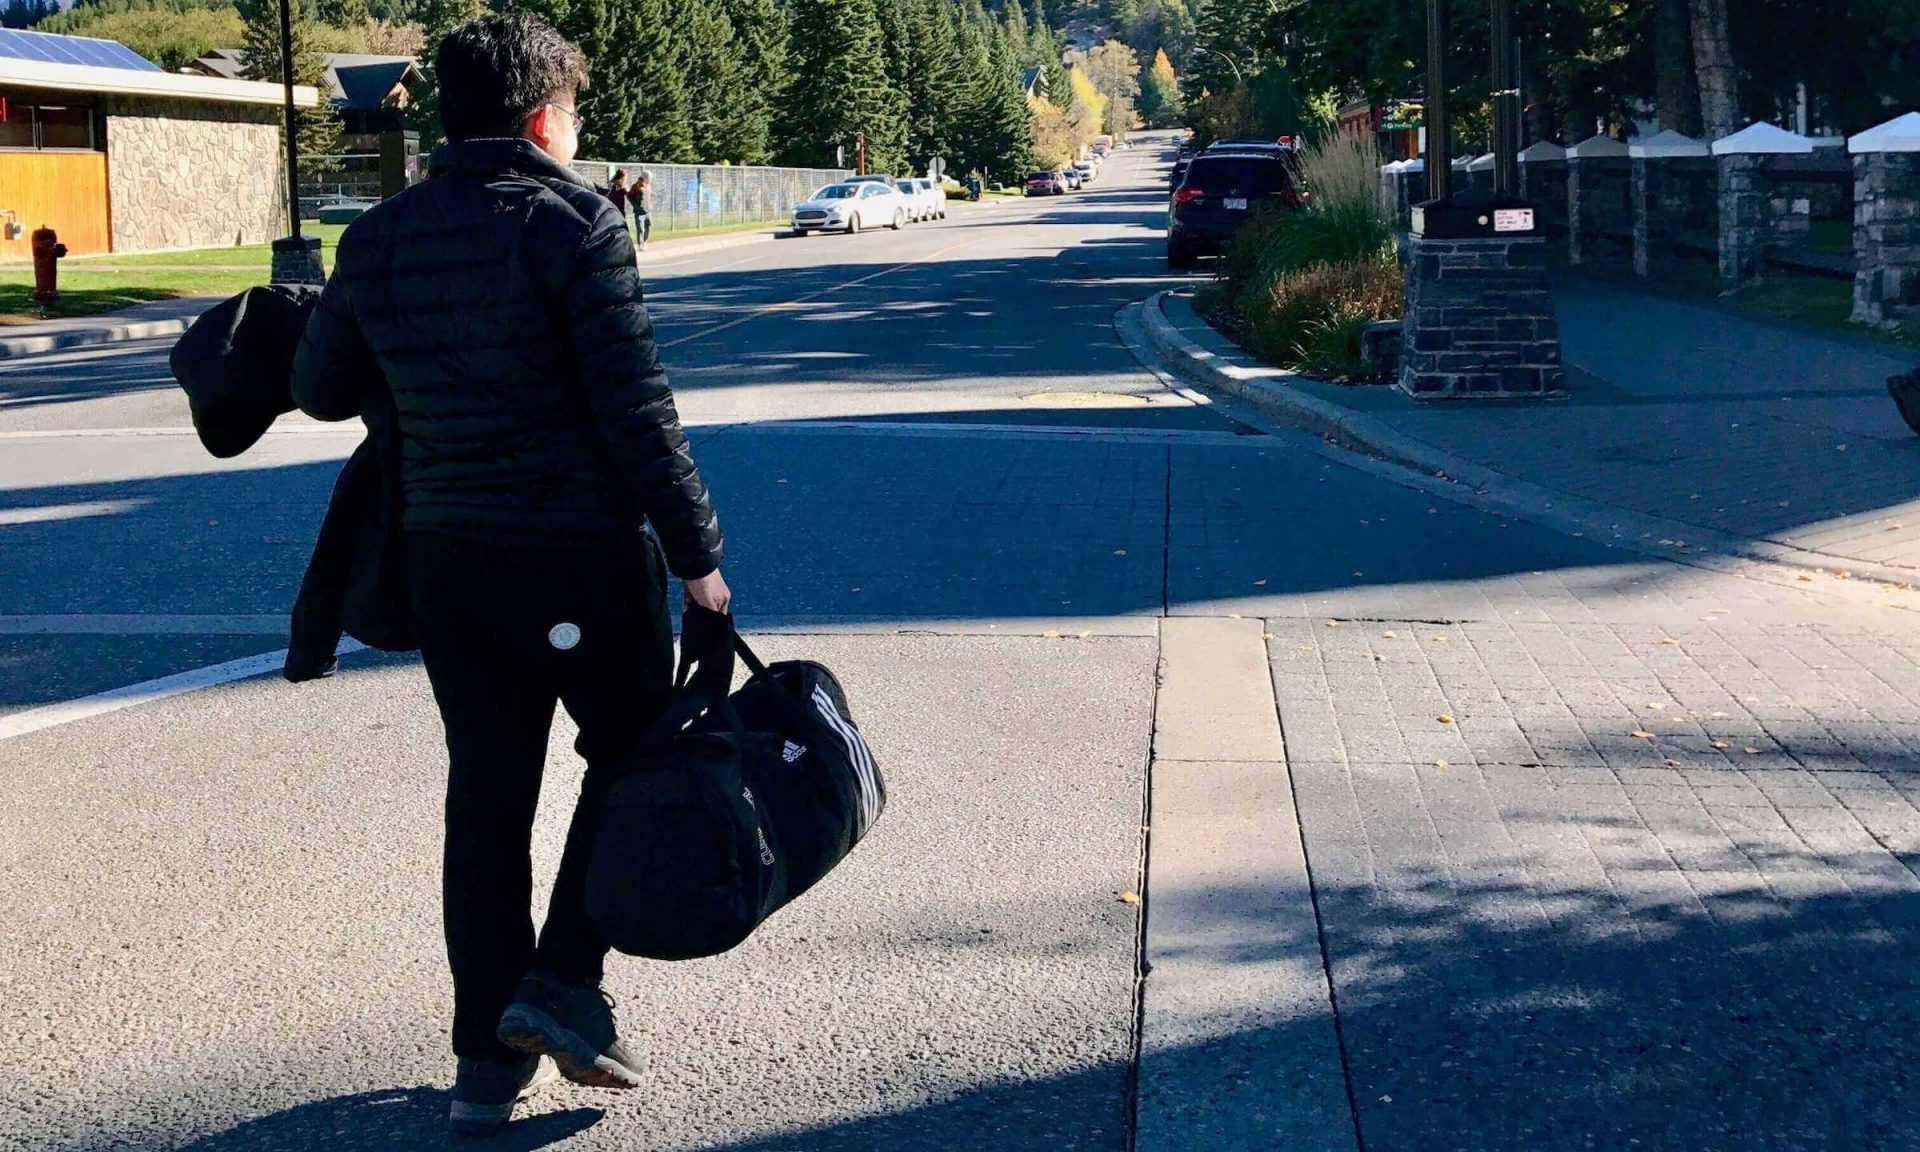 Khoi Nguyen is traveling at Banff, Canada. Traveling makes him smarter